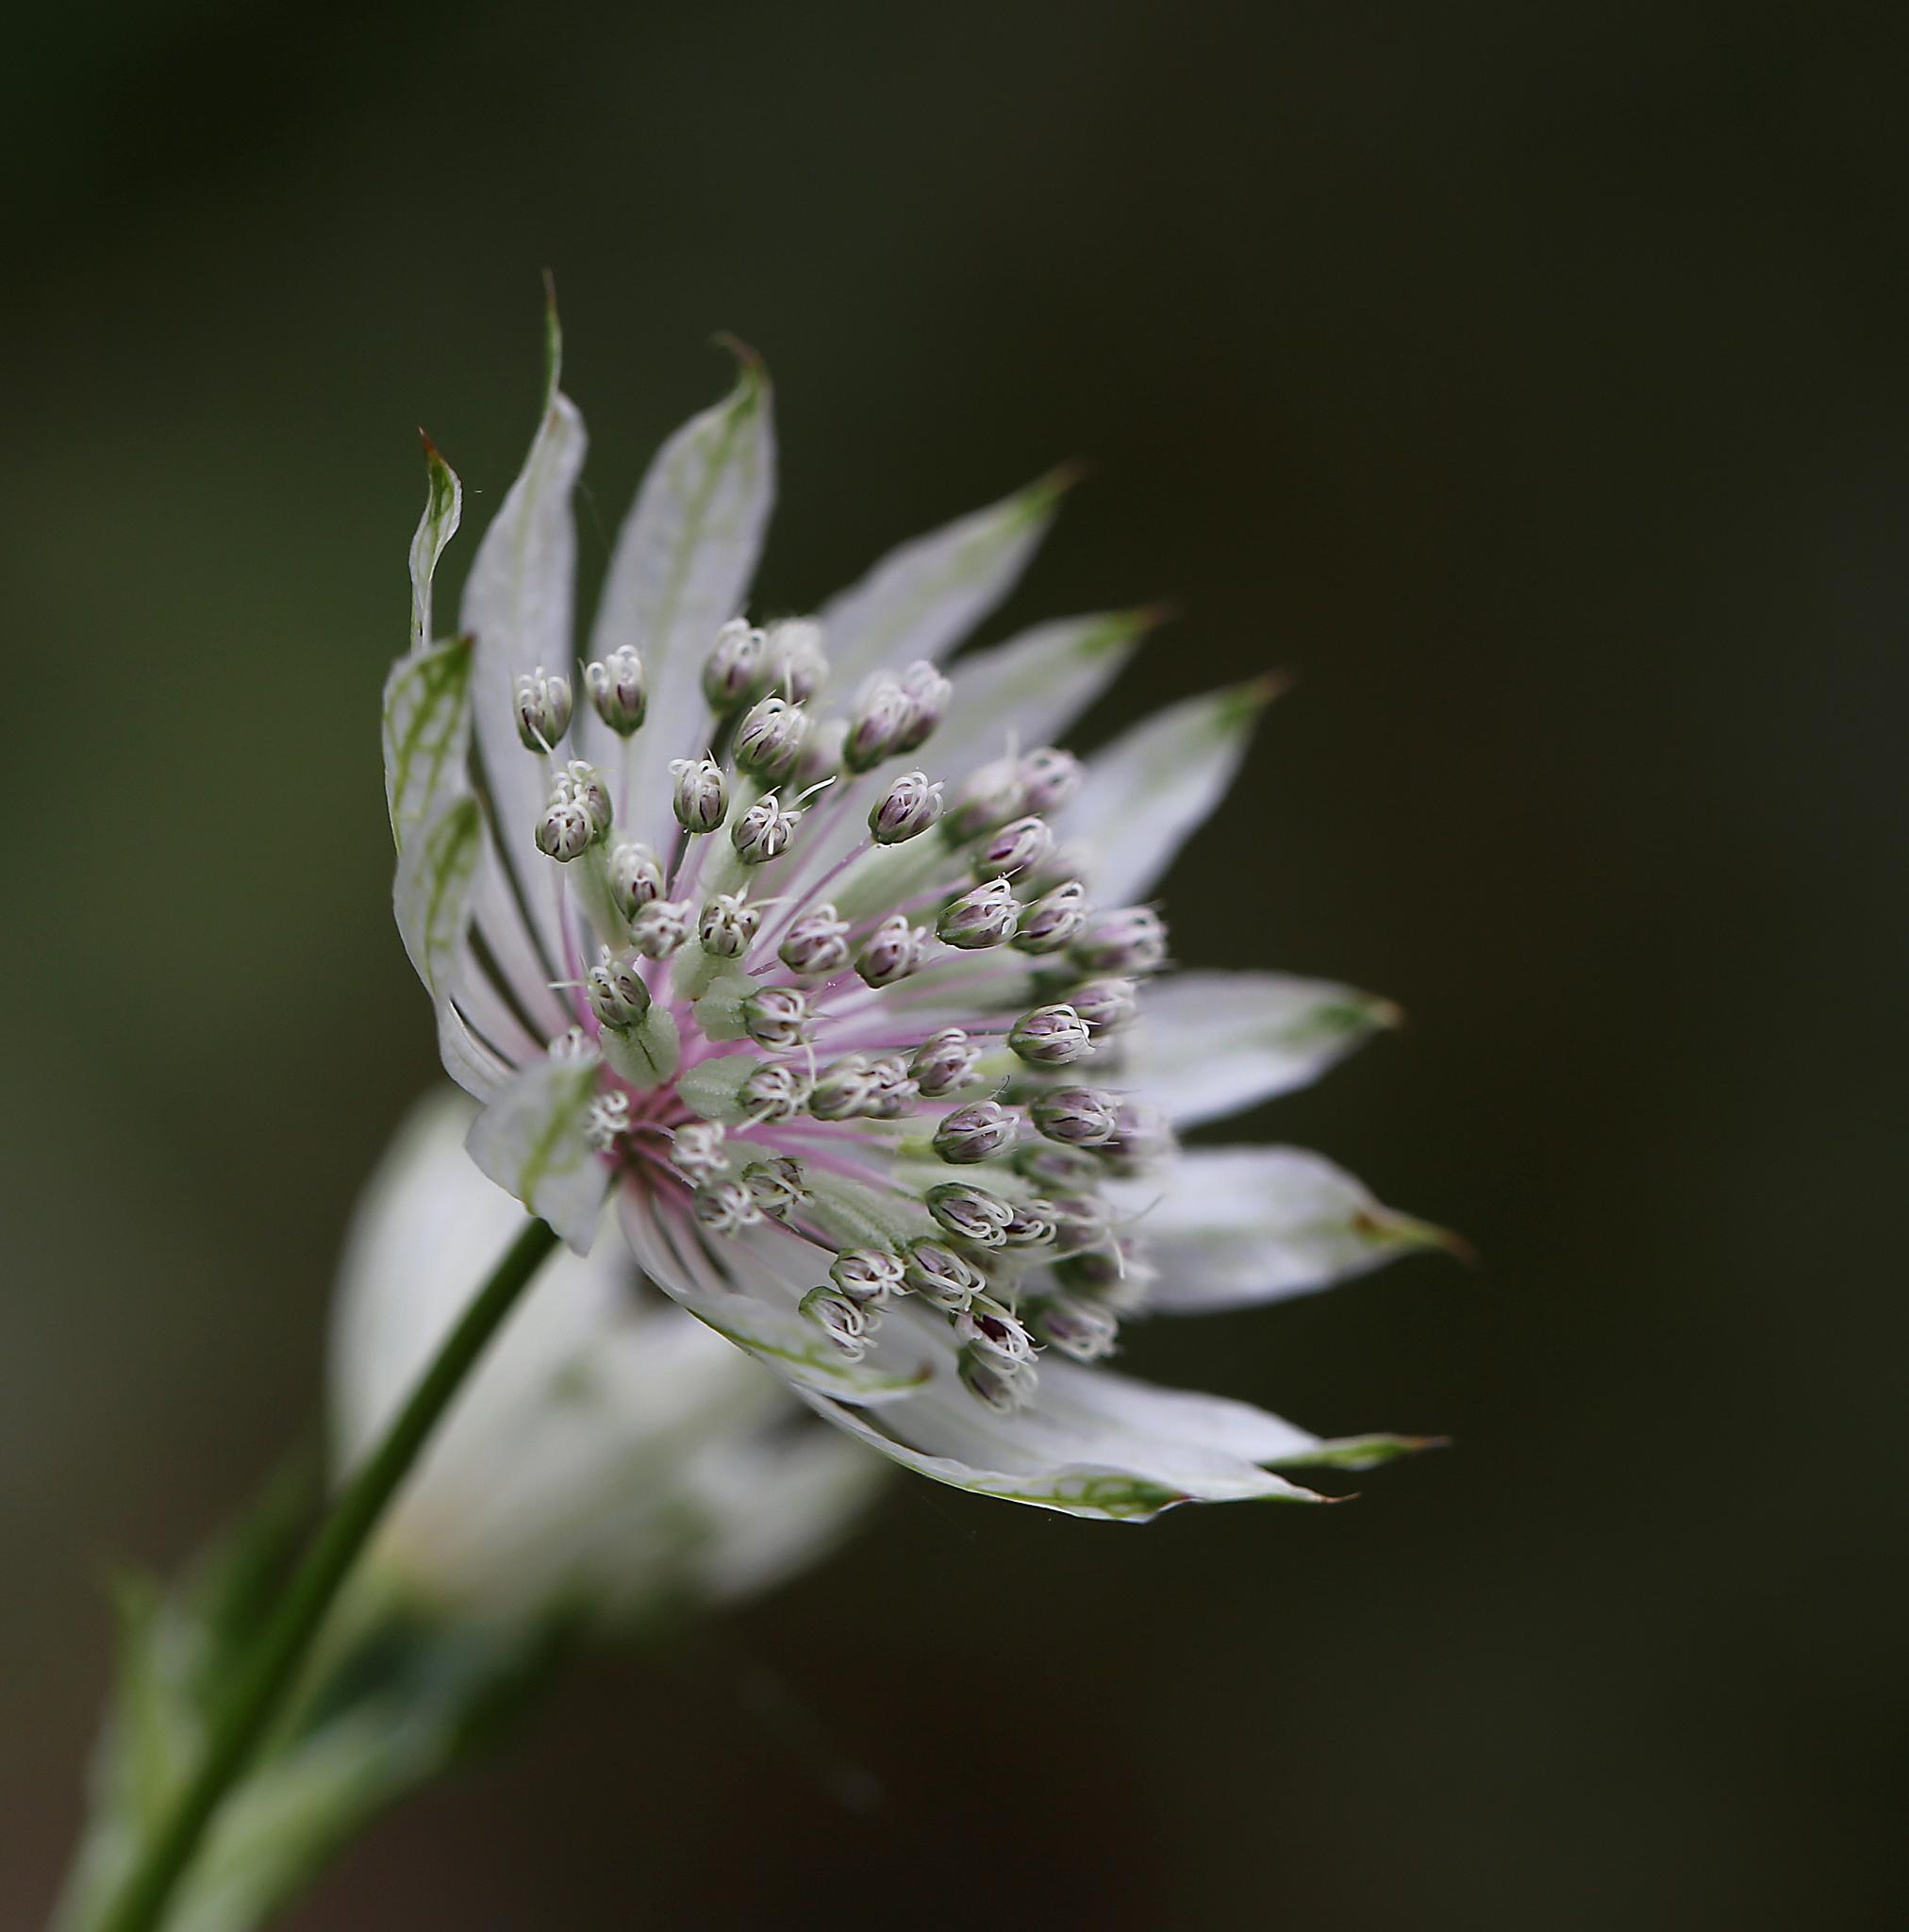 Astrantia by Hannie vd